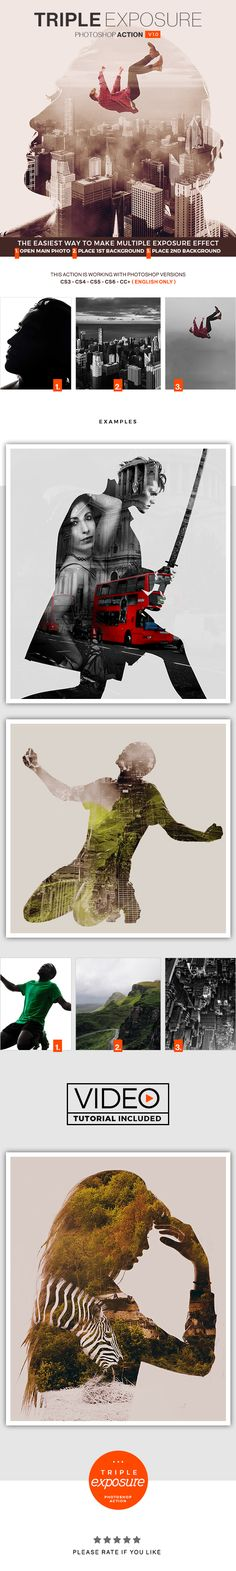 Triple Exposure Photoshop Action — Photoshop ATN #bi #light • Download ➝ https://graphicriver.net/item/triple-exposure-photoshop-action/19446971?ref=pxcr